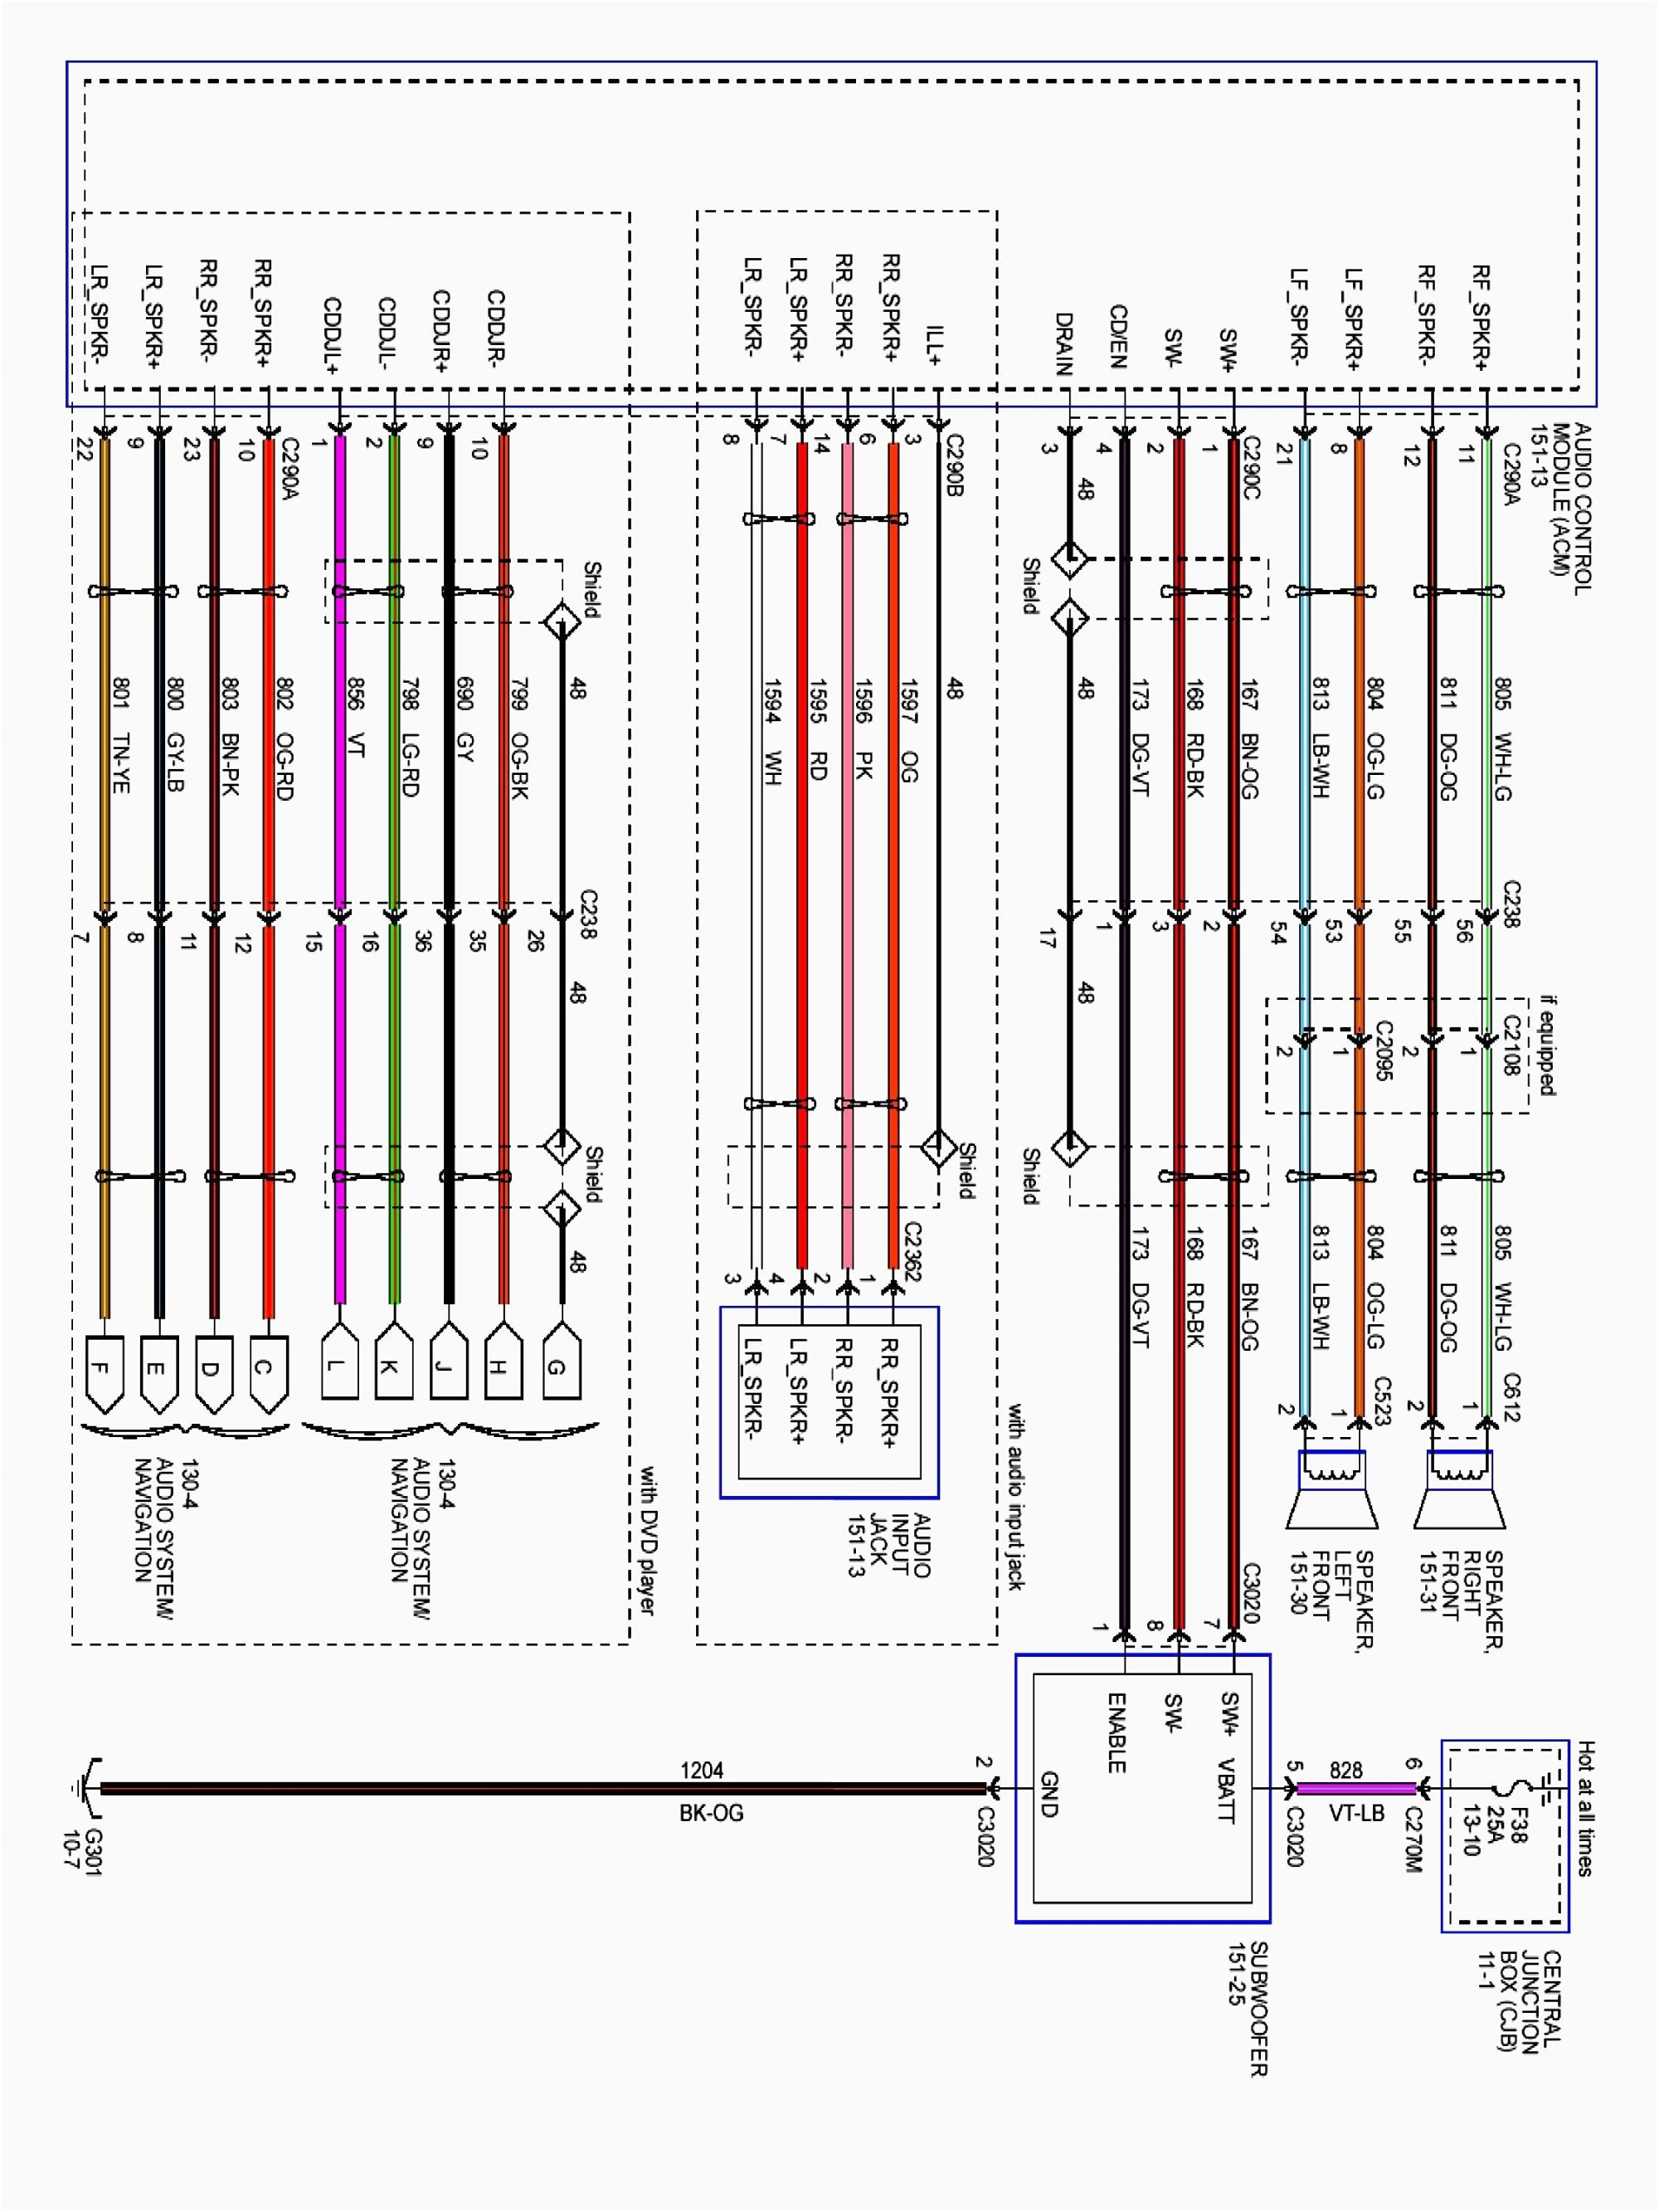 hight resolution of ford expedition headlight wiring harness wiring diagram name 2000 expedition wiring diagram wiring diagram ford expedition